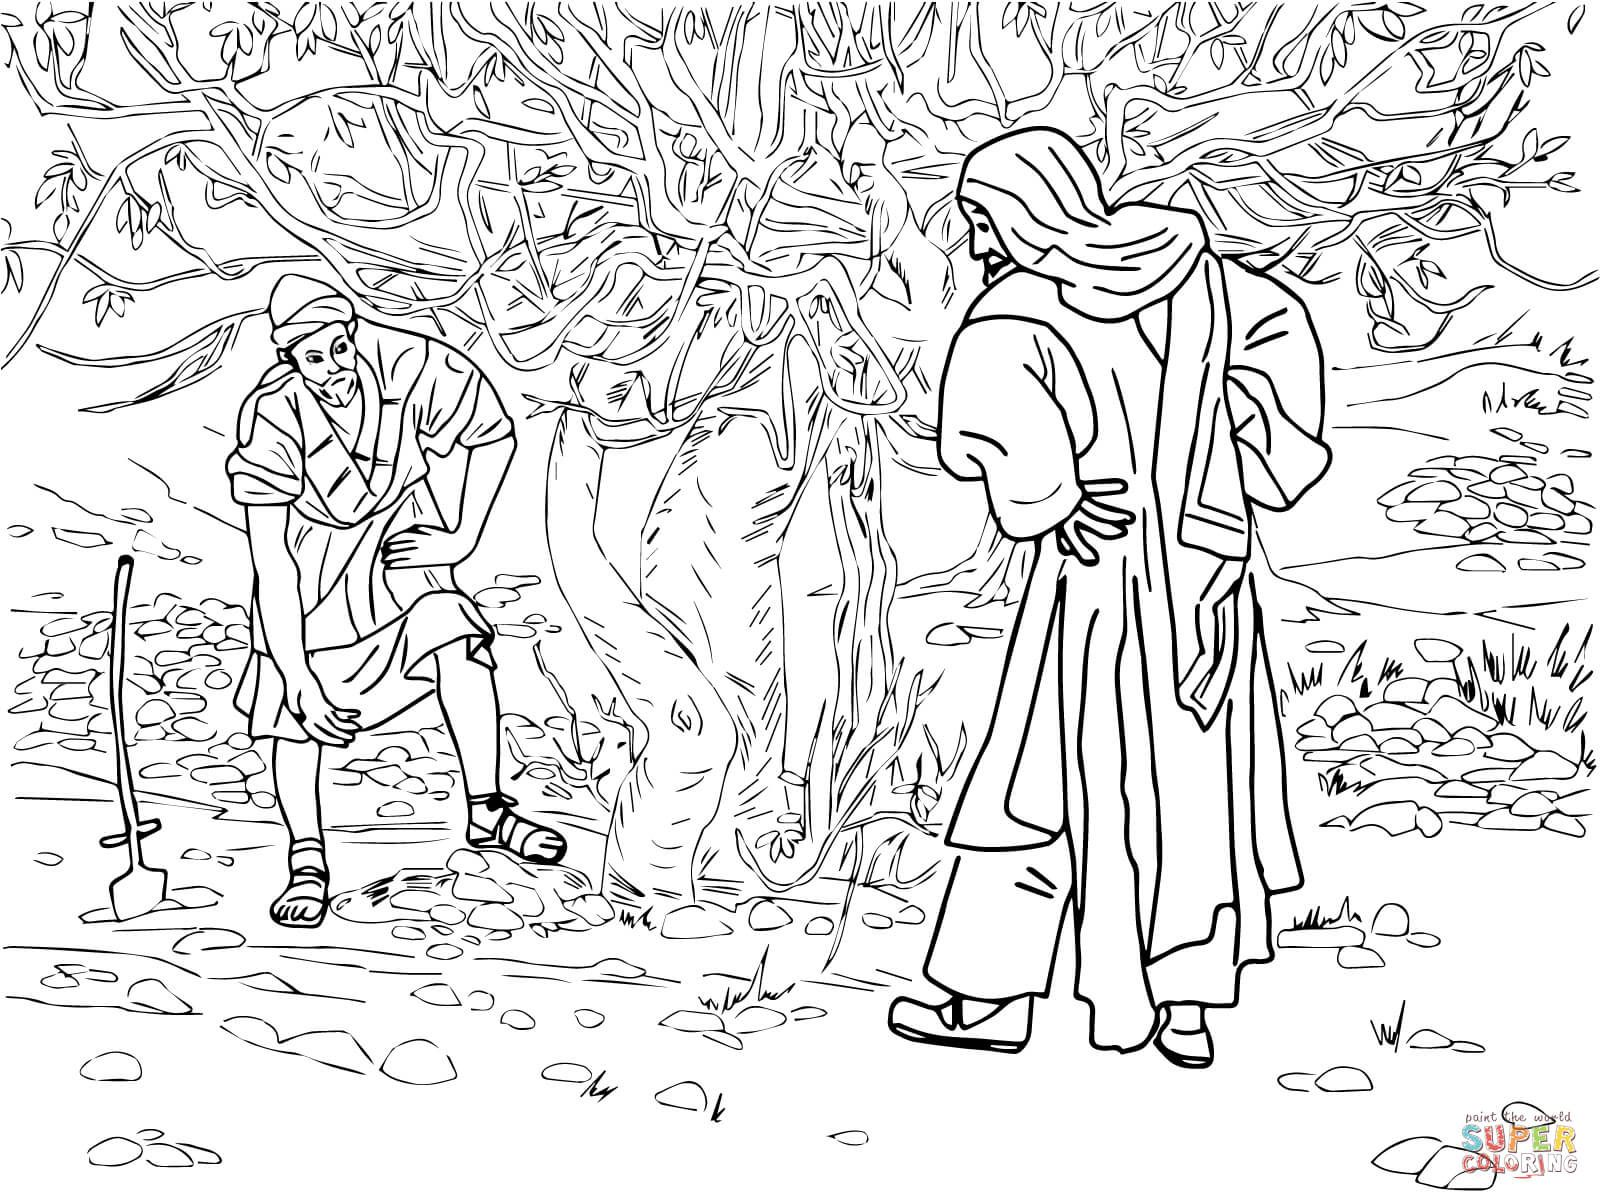 Barren Fig Tree Parable Super Coloring Tree Coloring Page